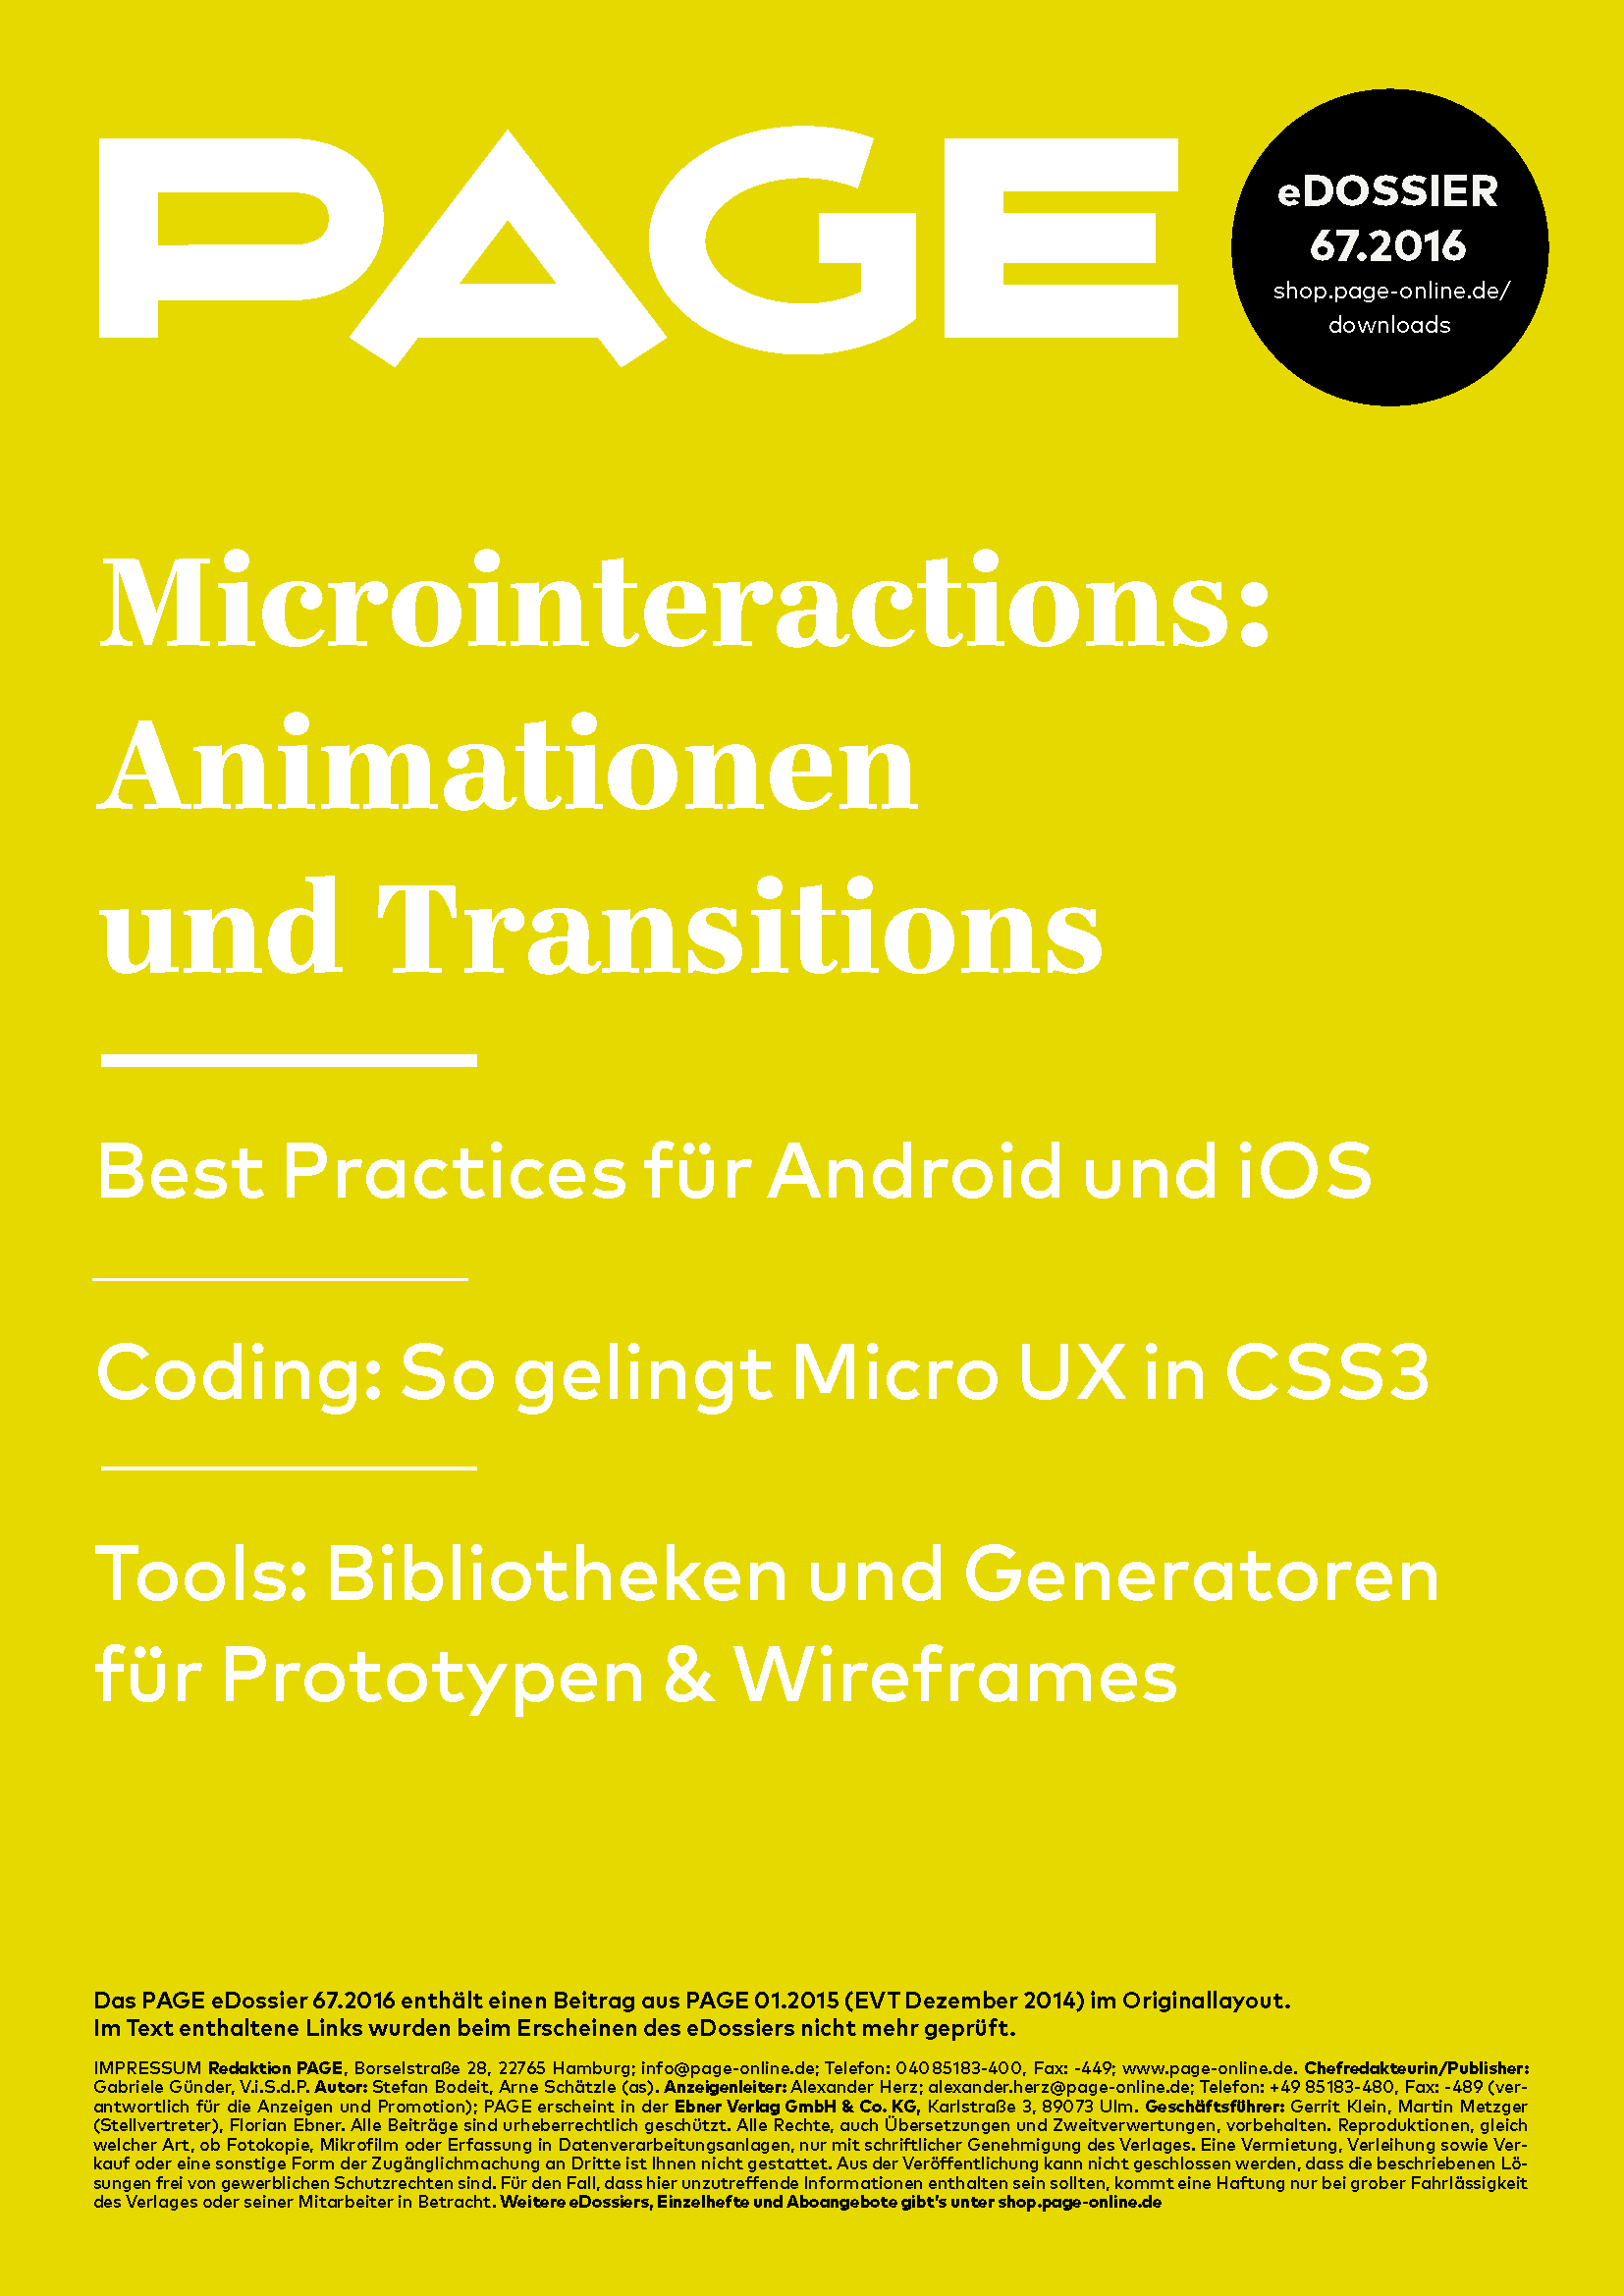 Produkt: eDossier: »Microinteractions: Animationen und Transitions«